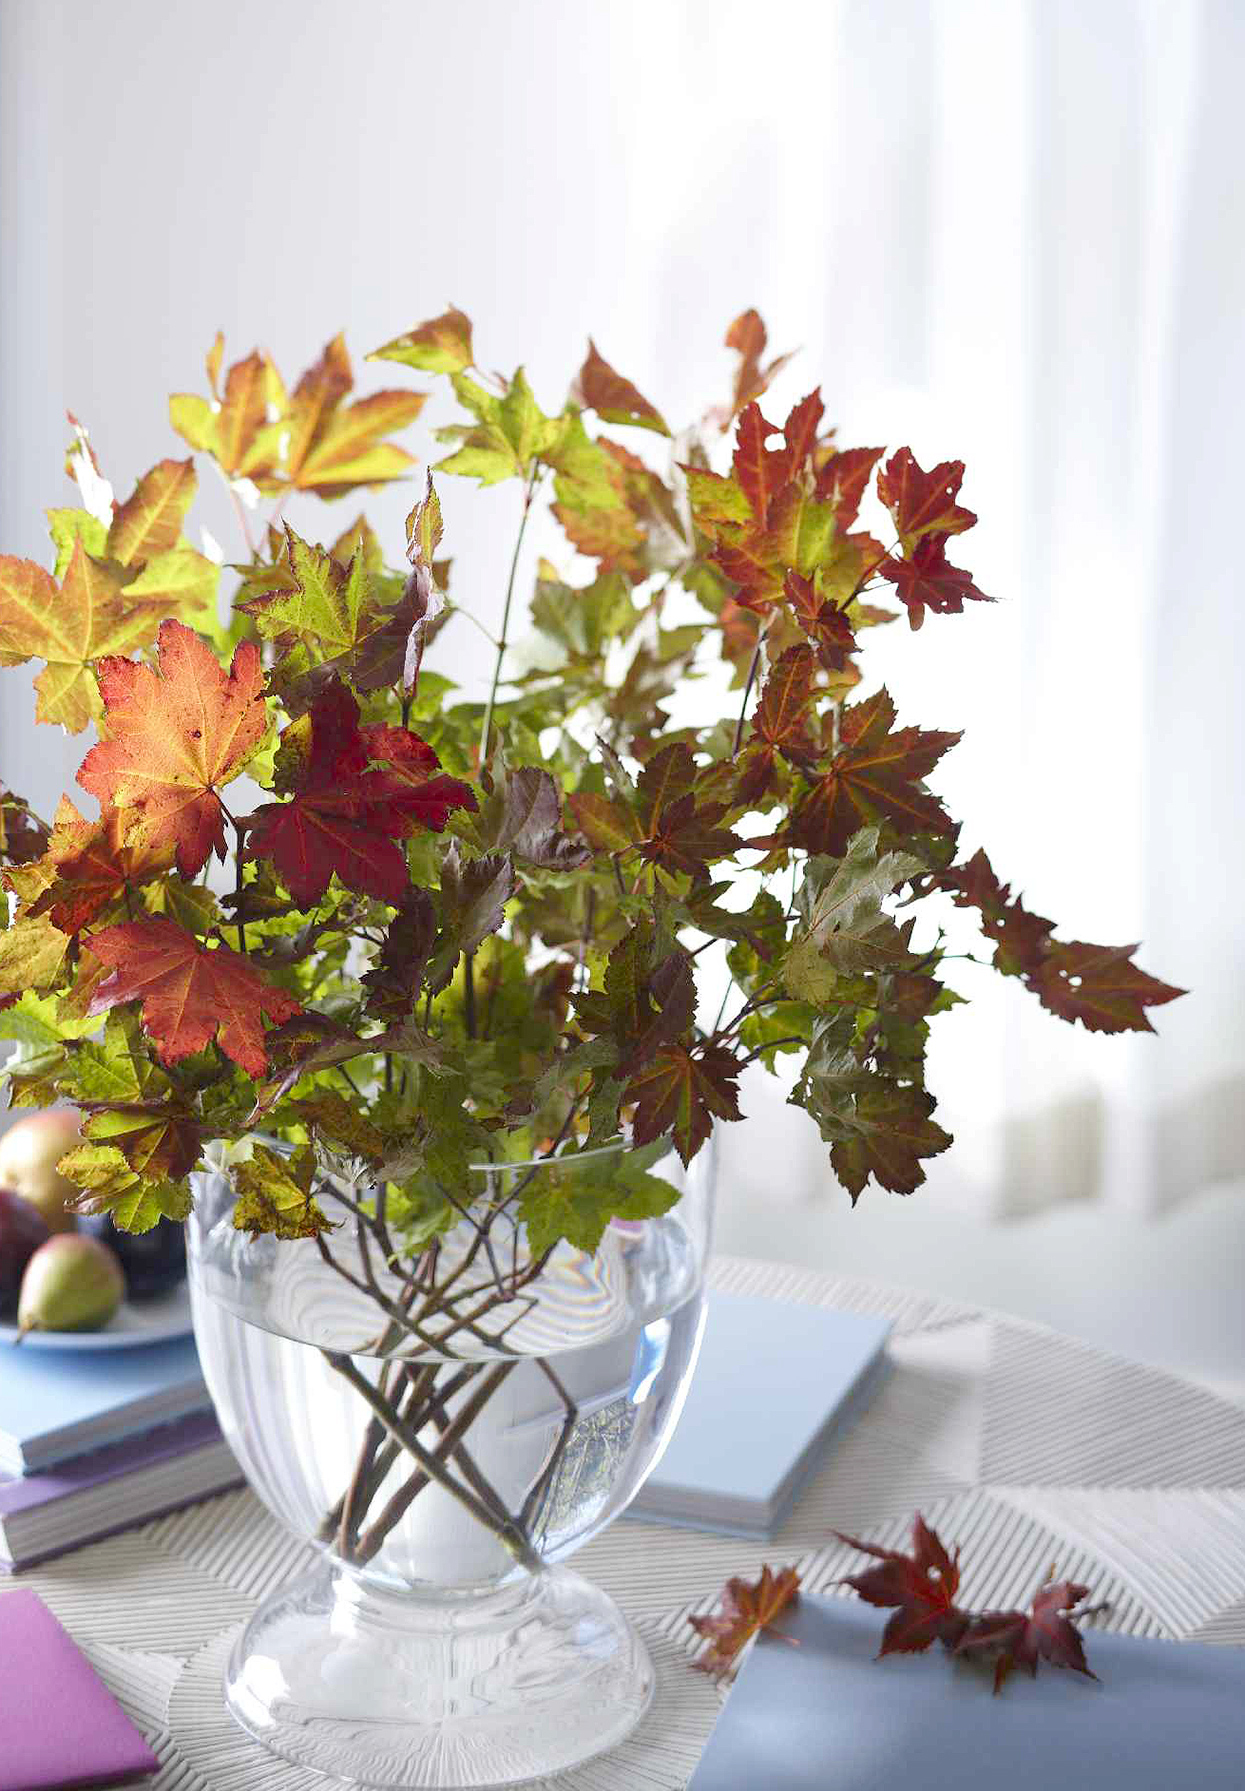 autumnal arrangement with leaves in vase